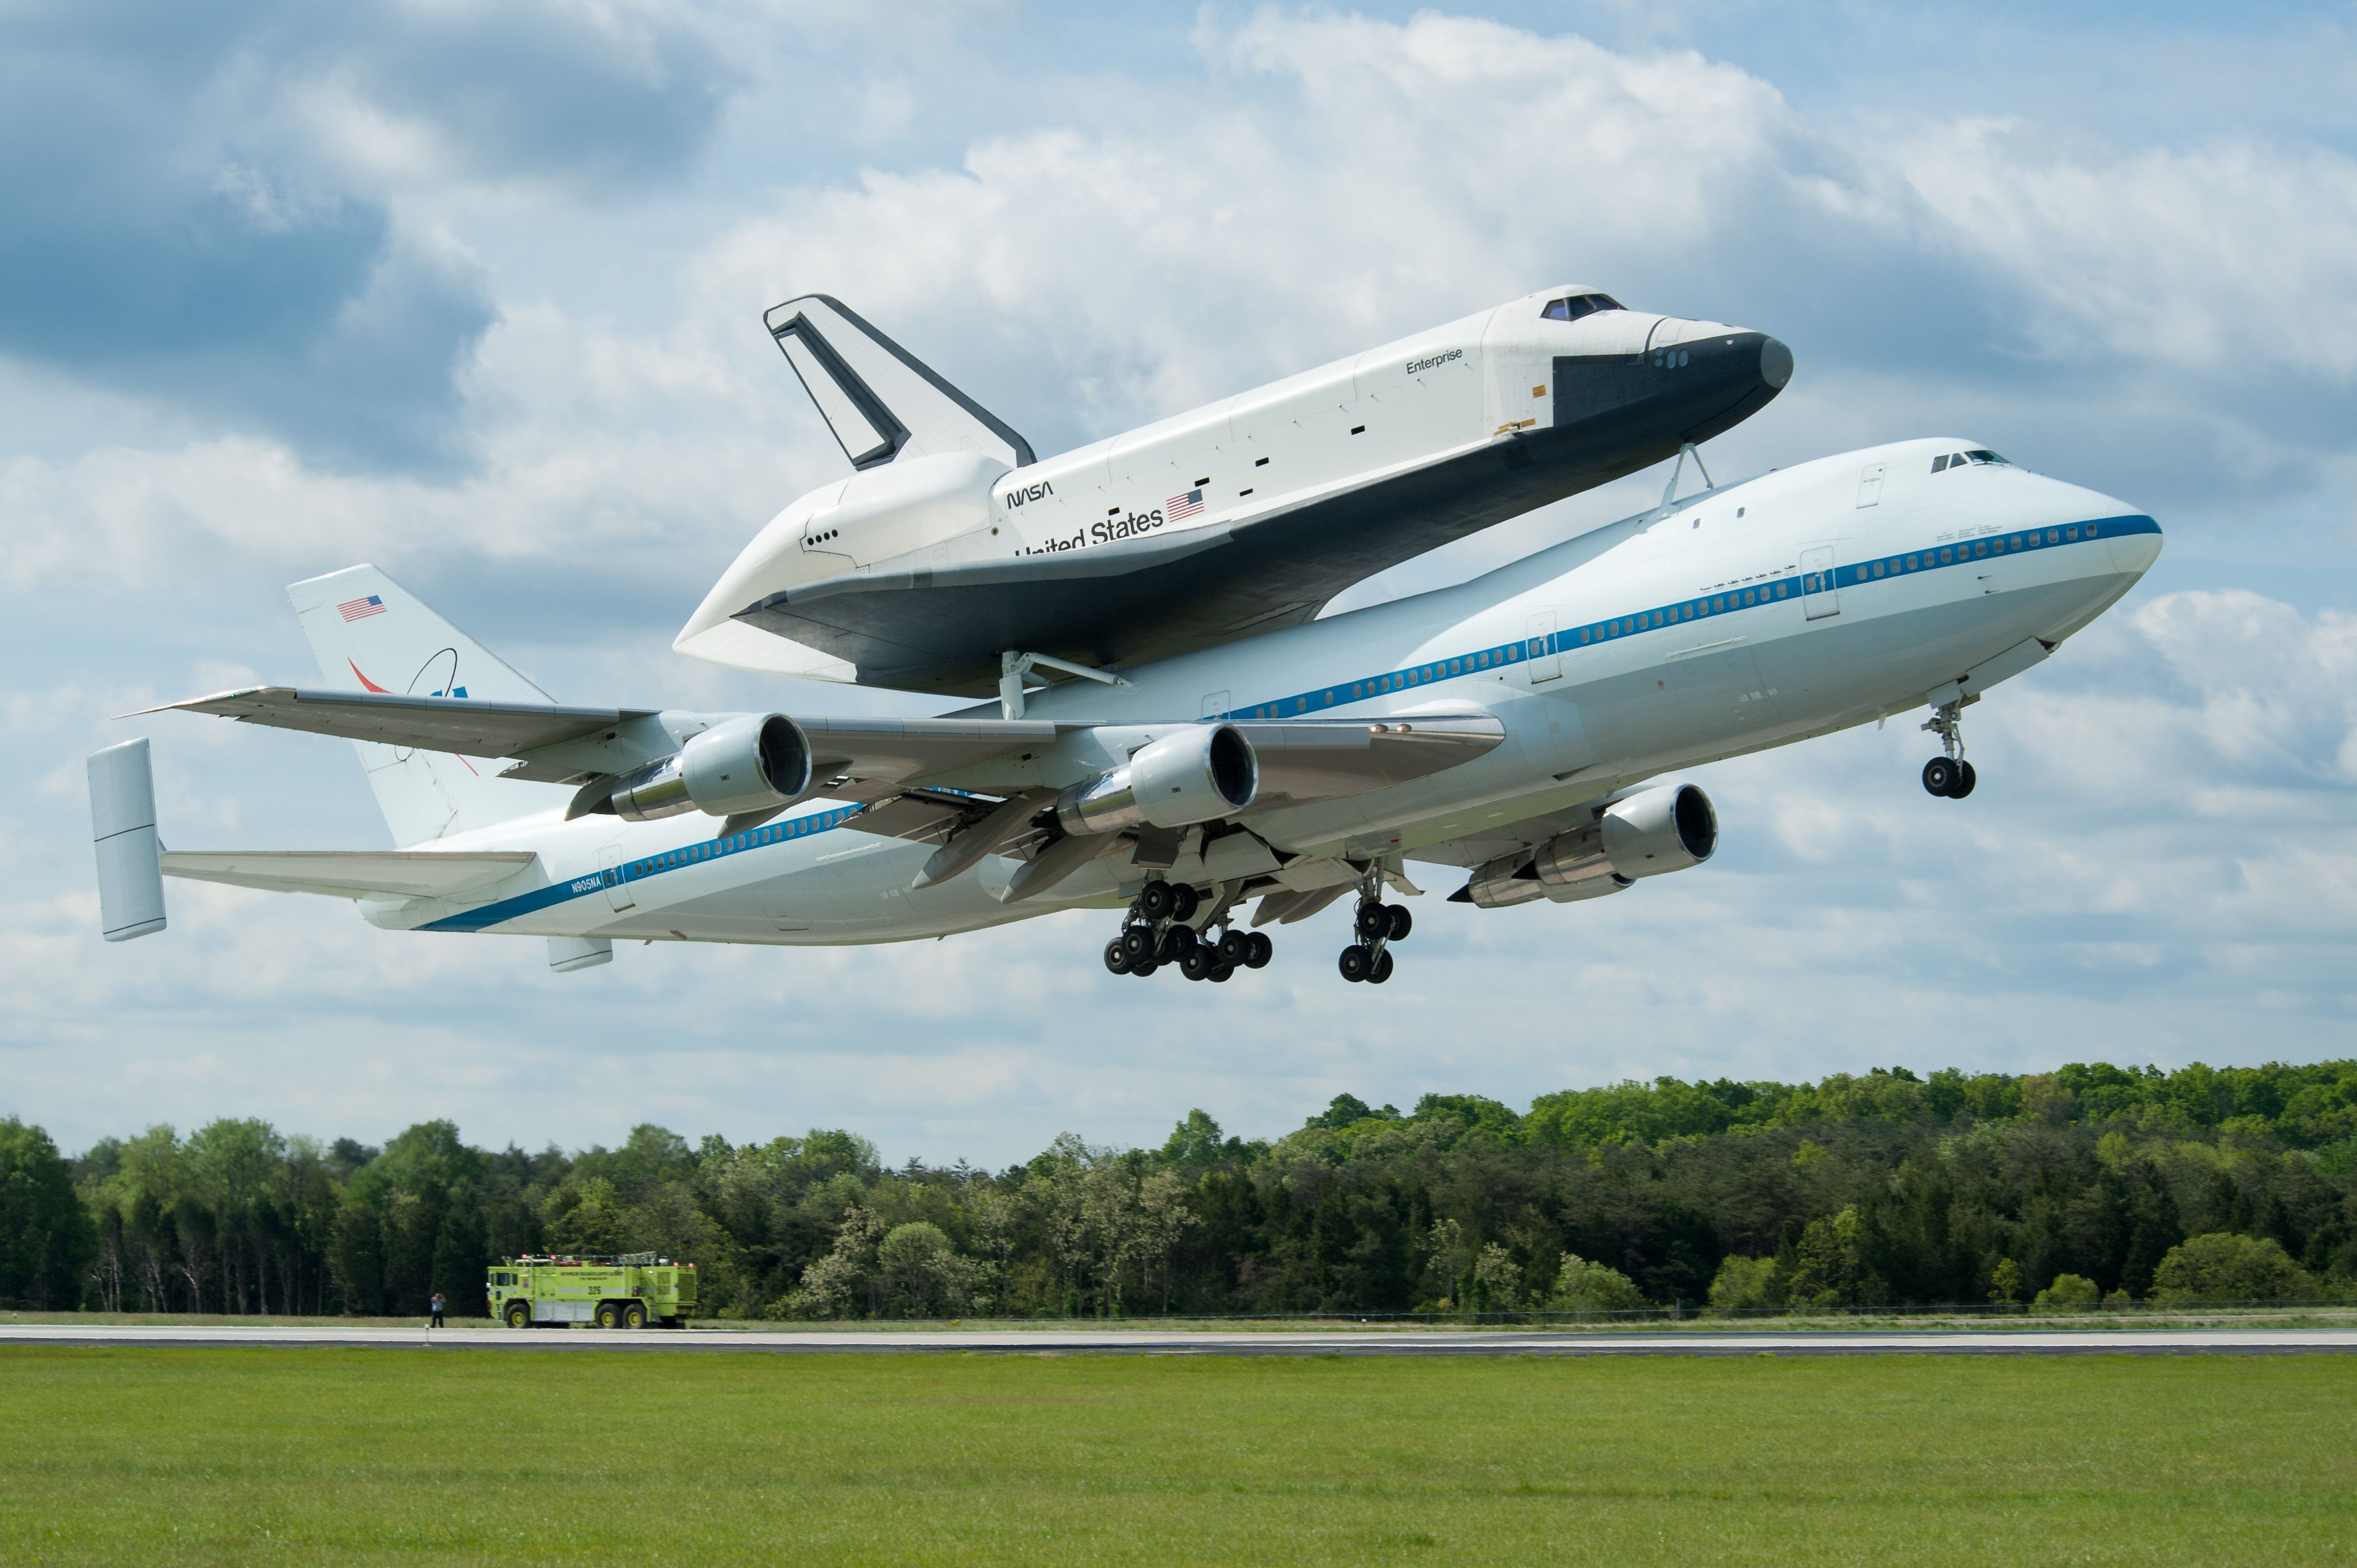 Space shuttle Enterprise is seen as it takes off for New York from Washington Dulles International Airport. Description from ibnlive.in.com. I searched for this on bing.com/images